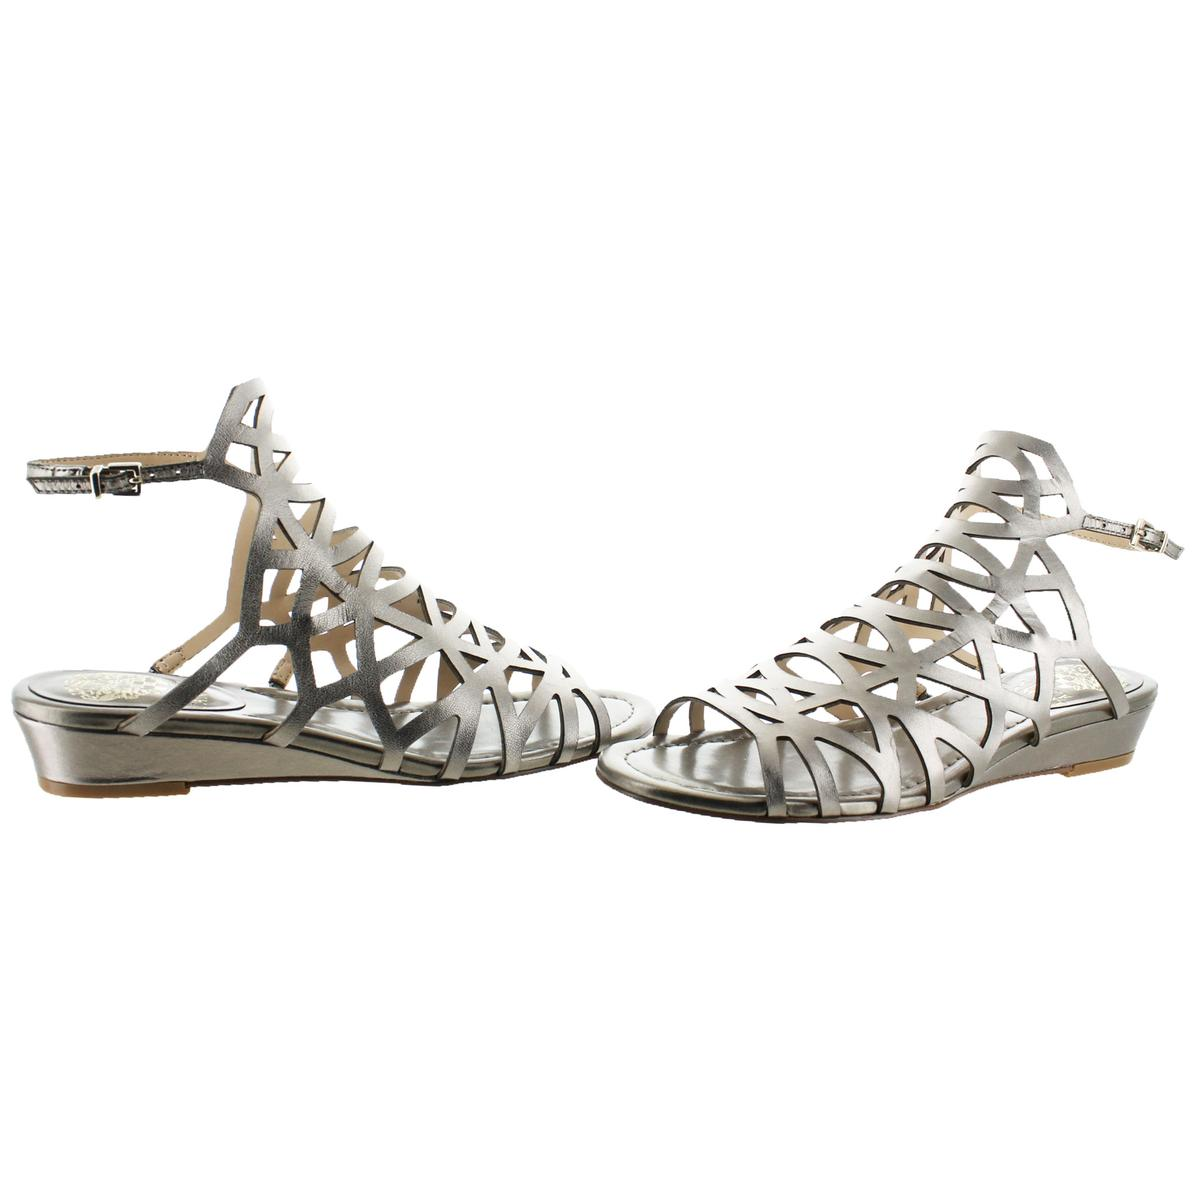 Vince-Camuto-Illana-Women-039-s-Leather-Strappy-Slingback-Caged-Sandal-Shoes thumbnail 12